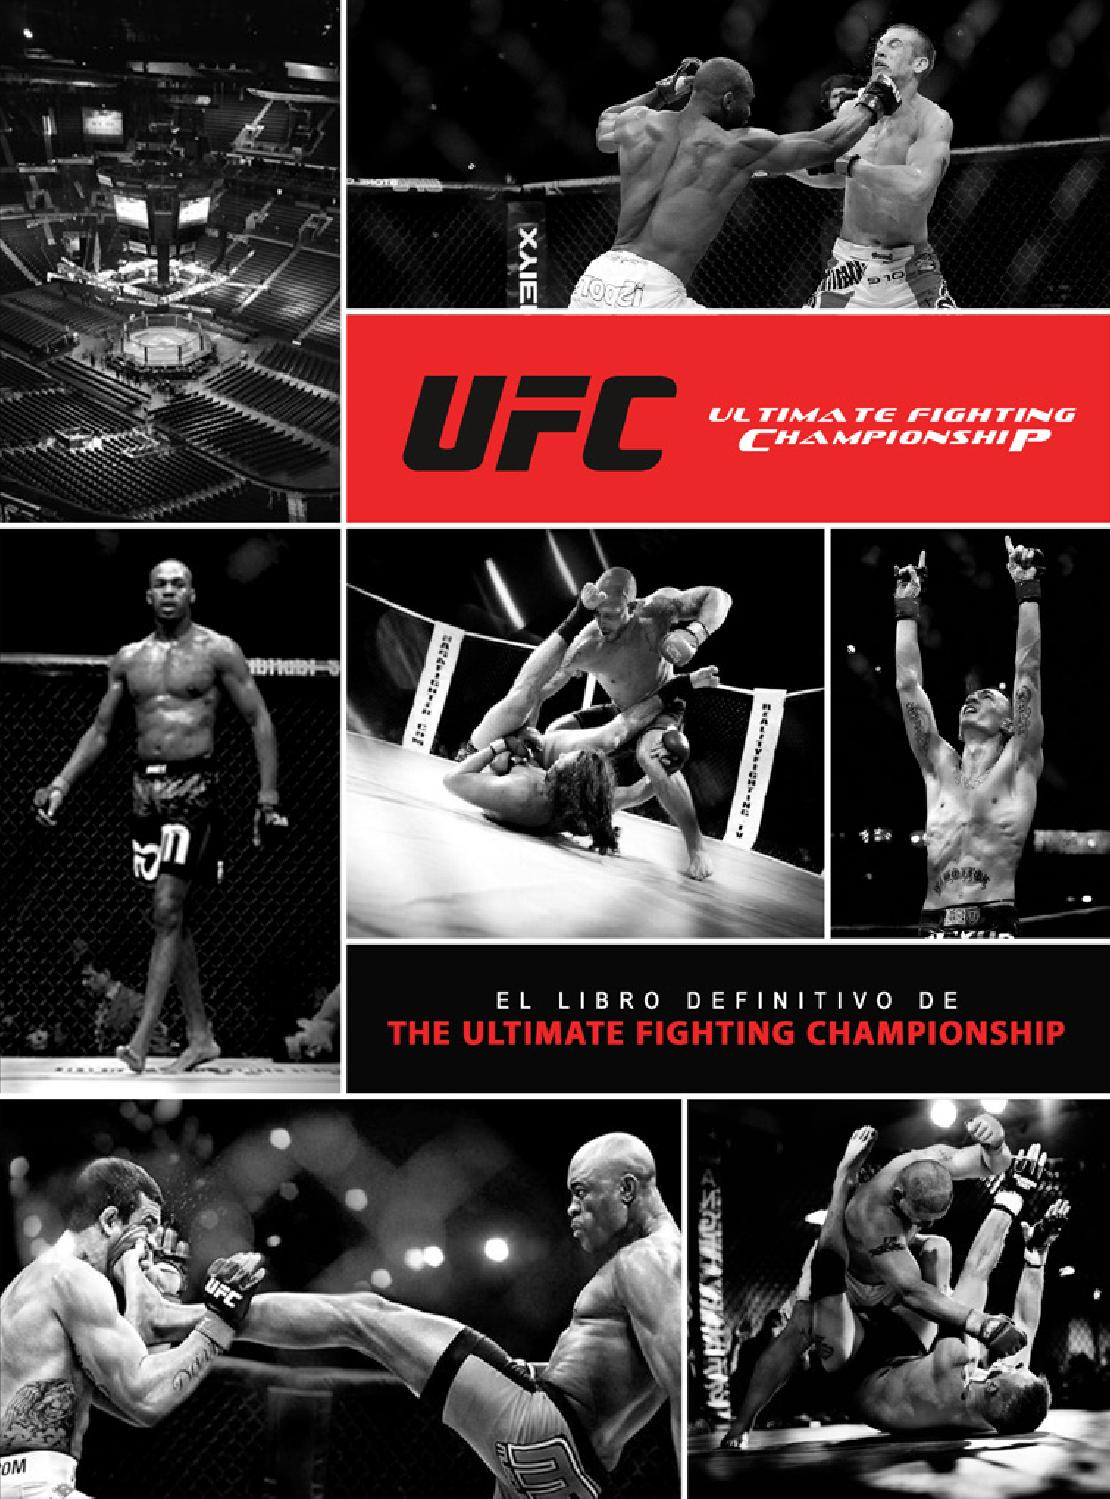 Book - ULTIMATE FIGHTING CHAMPIONSHIP by Alejandro Adriazola Torres ...